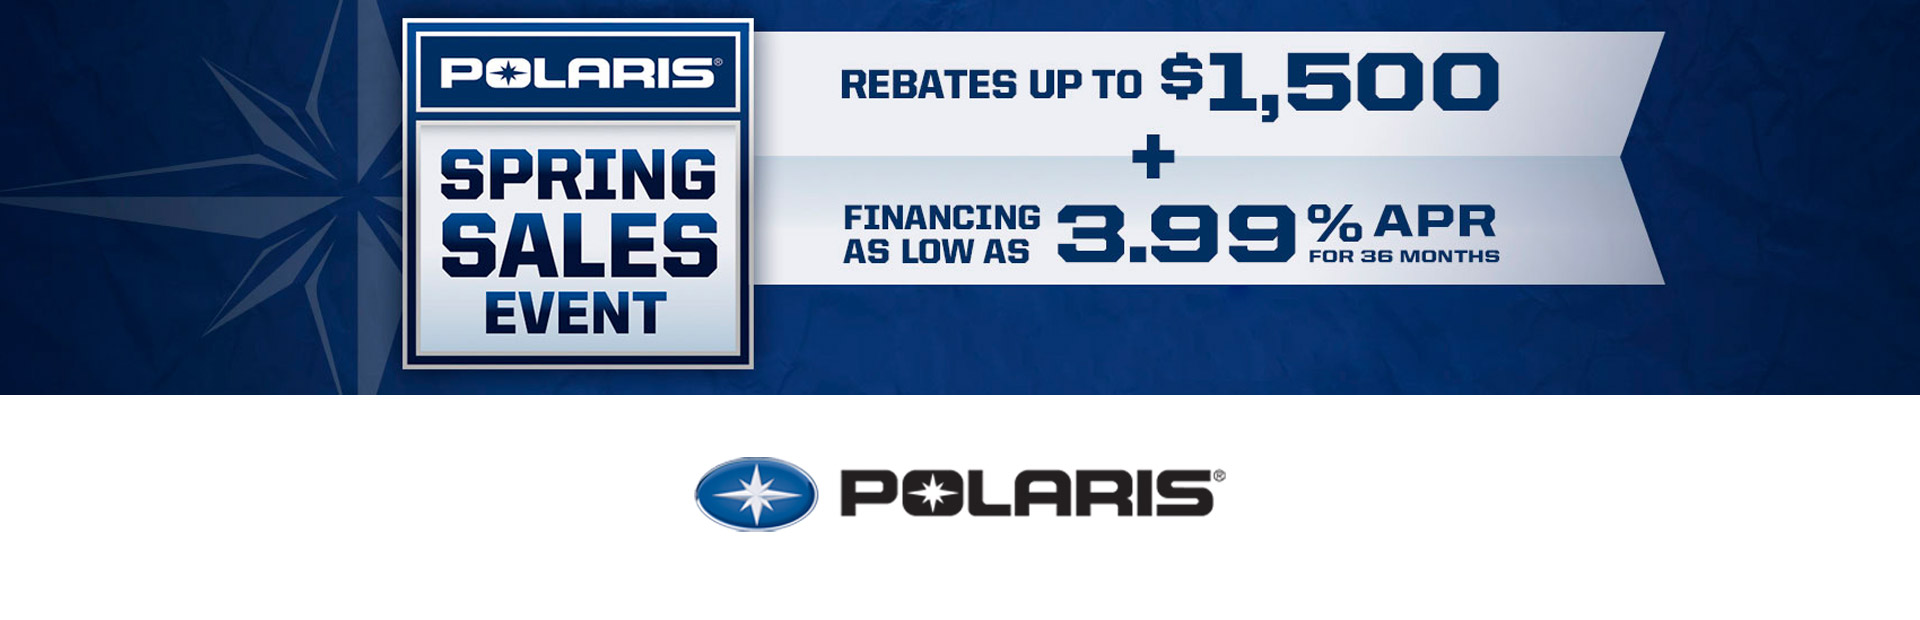 Polaris Industries: Spring Sales Event